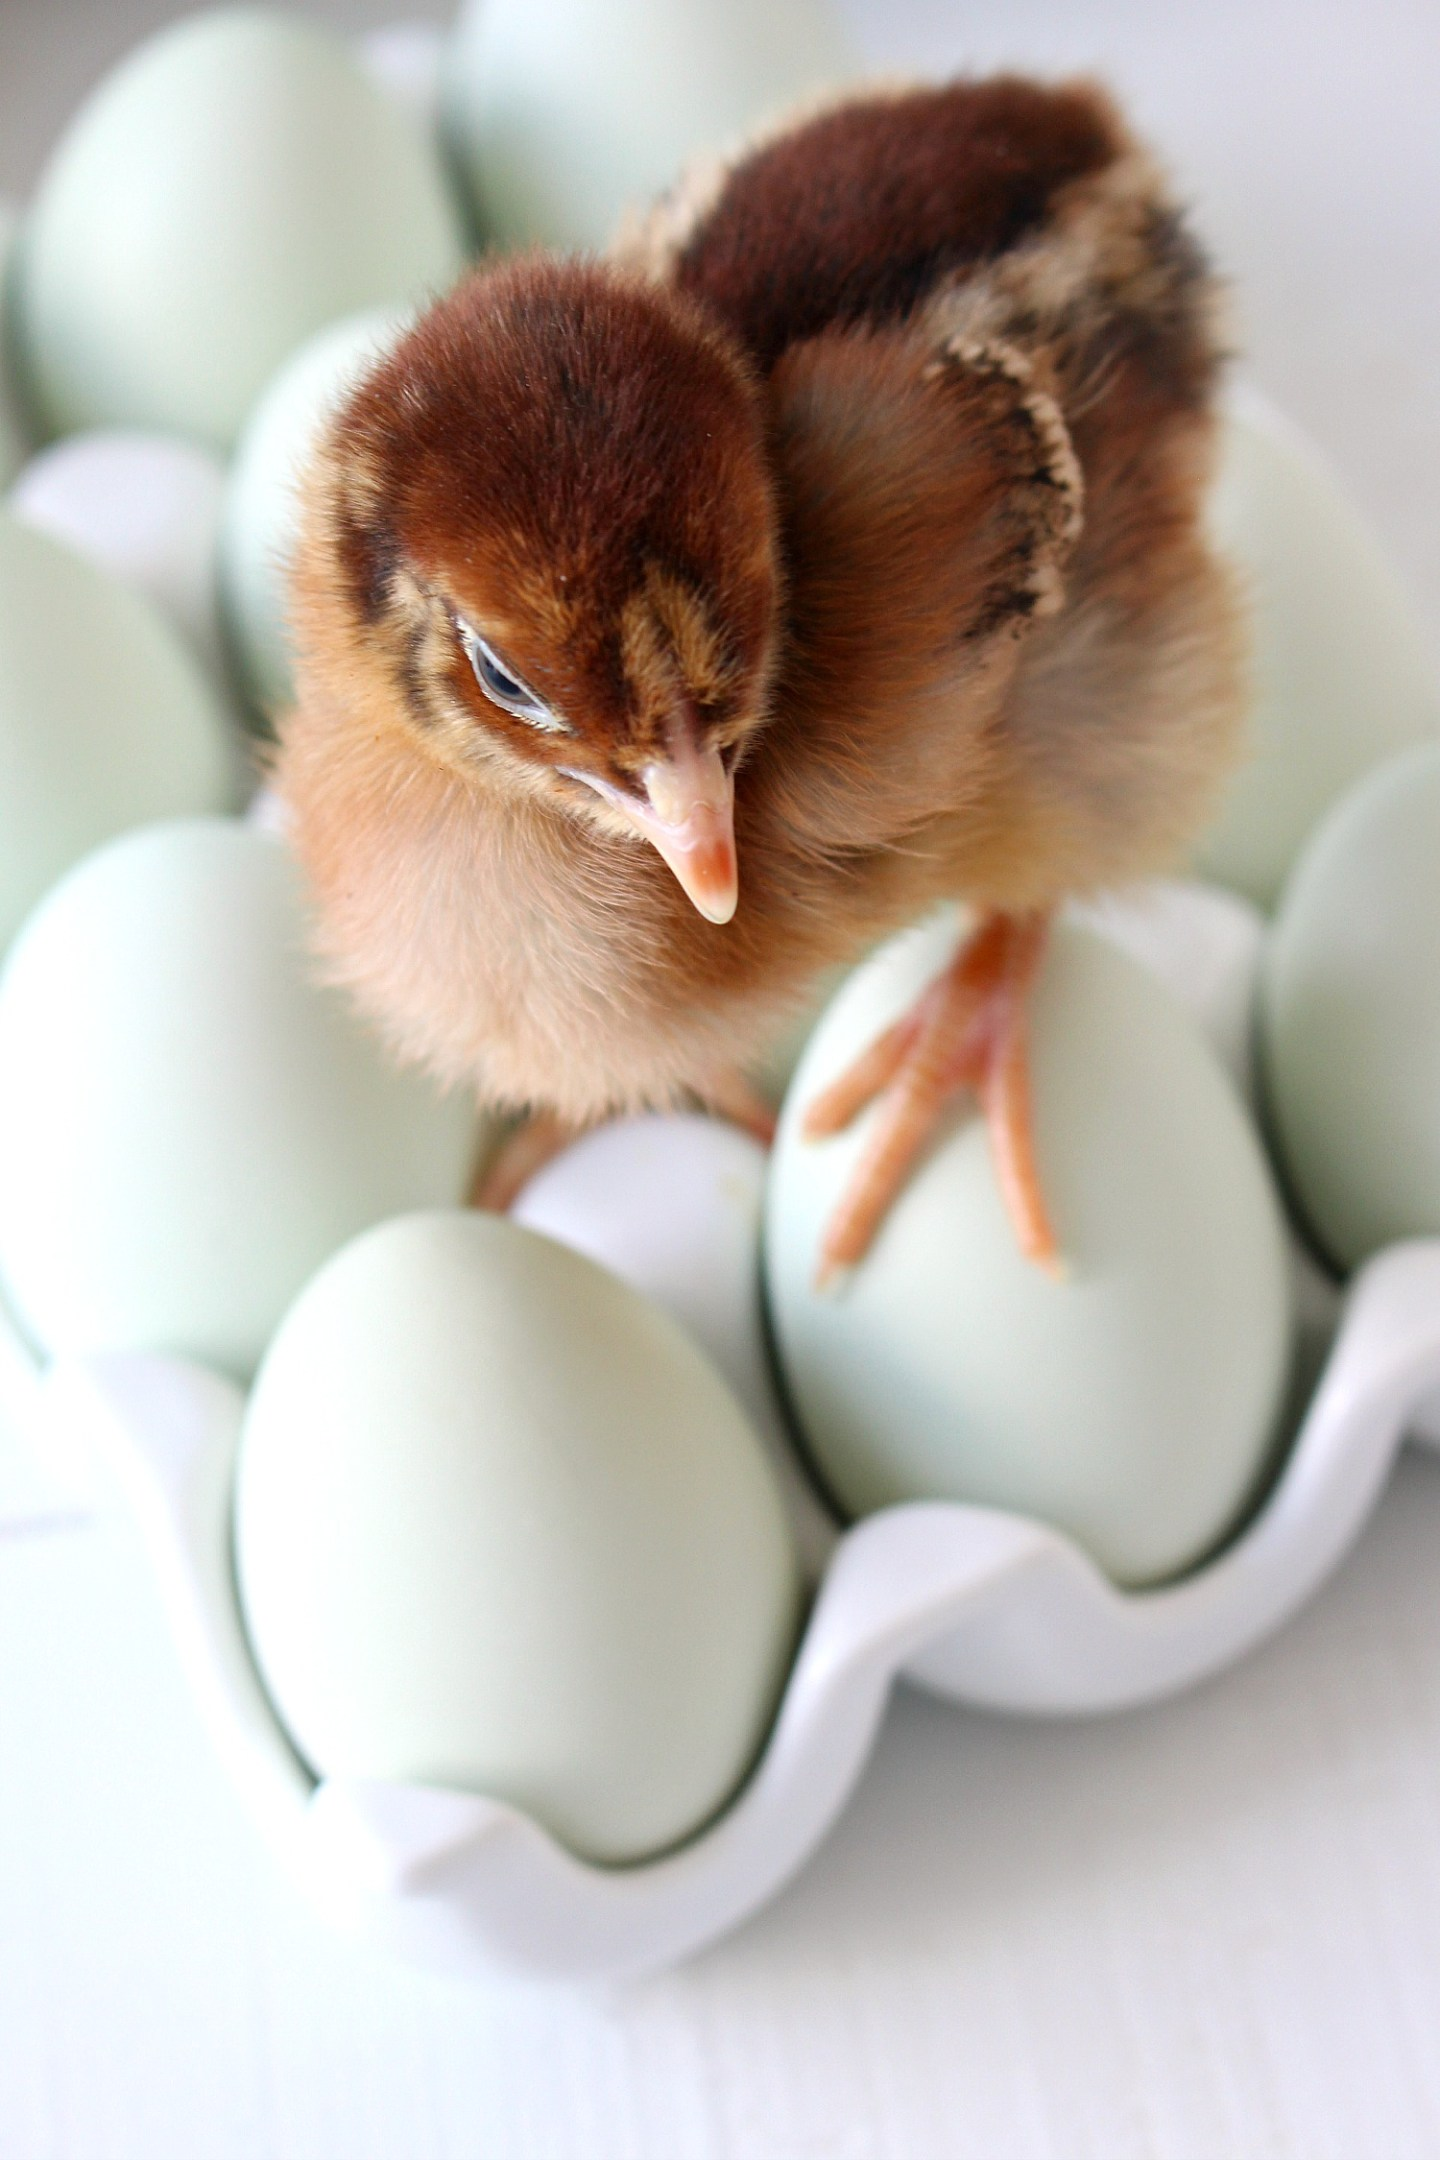 Baby Chicken Posing on Eggs